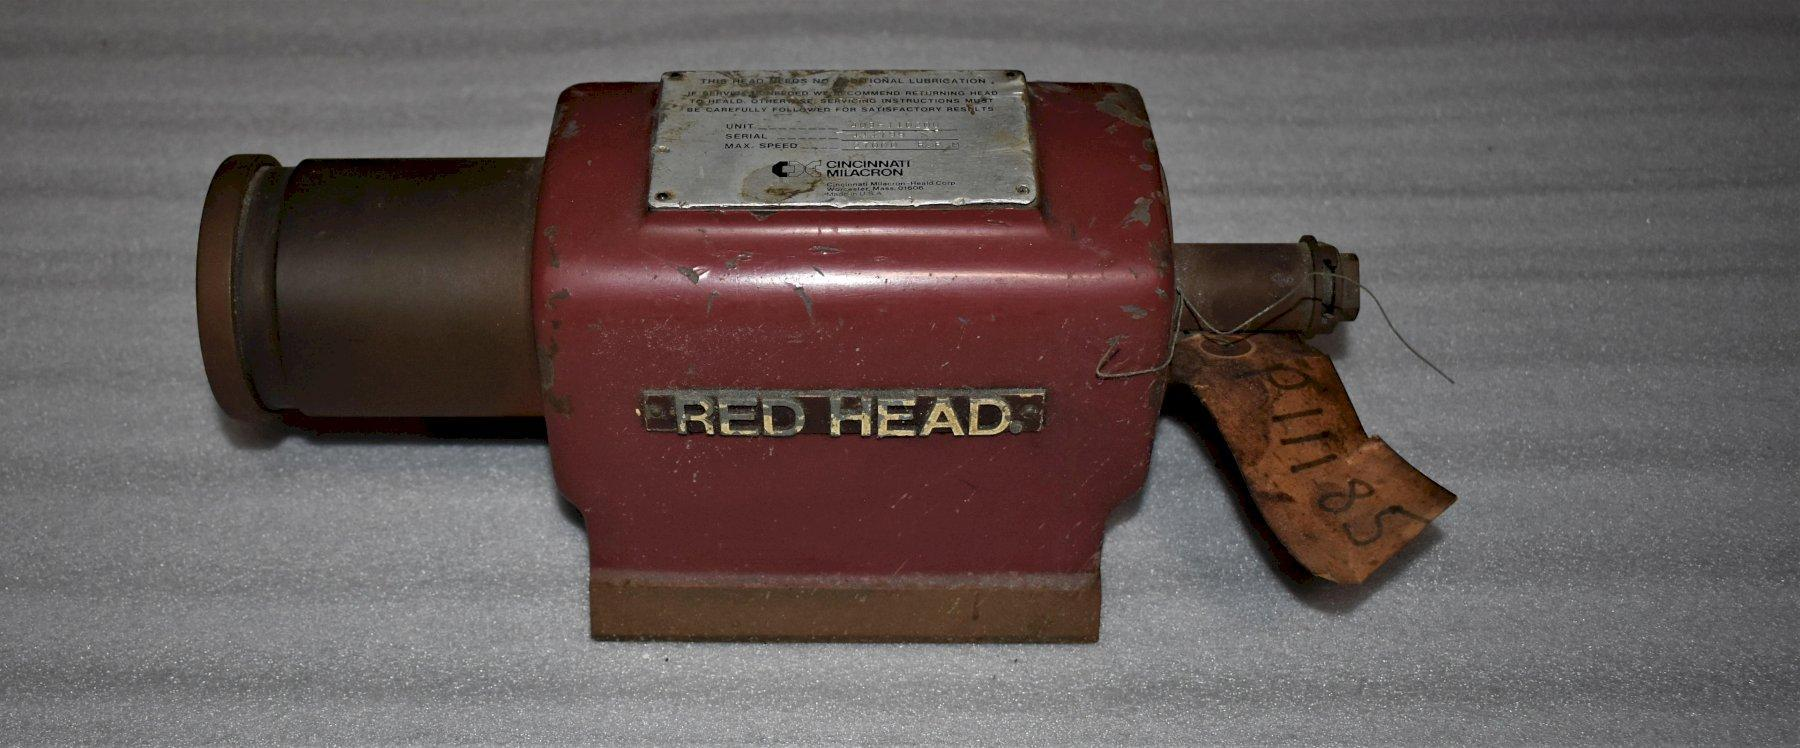 Heald Redhead Spindle - 27,000 RPM, SN 111799